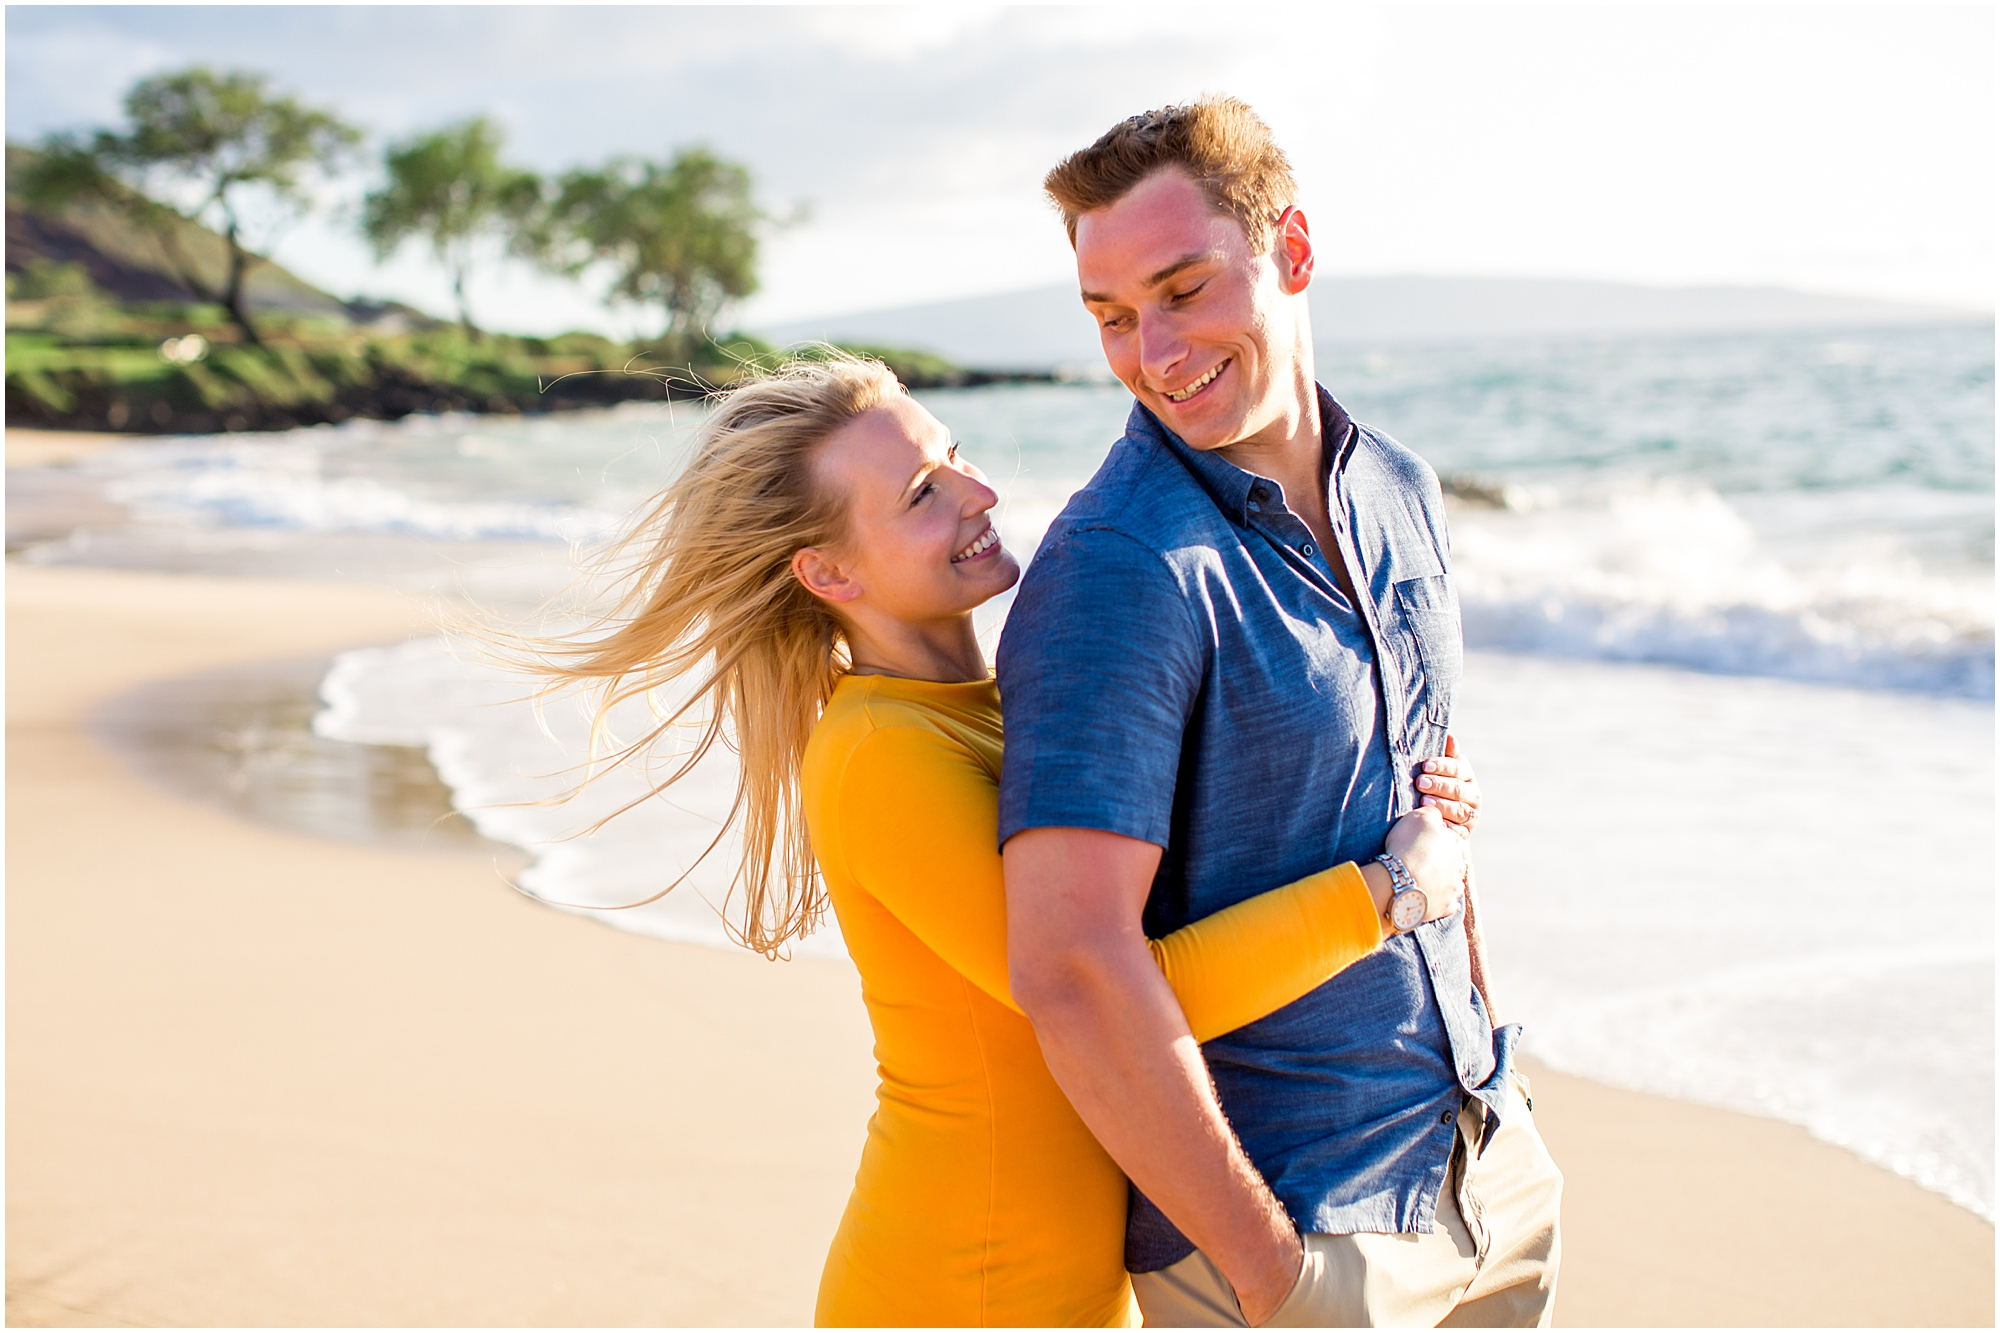 Maui engagement photography at the beach